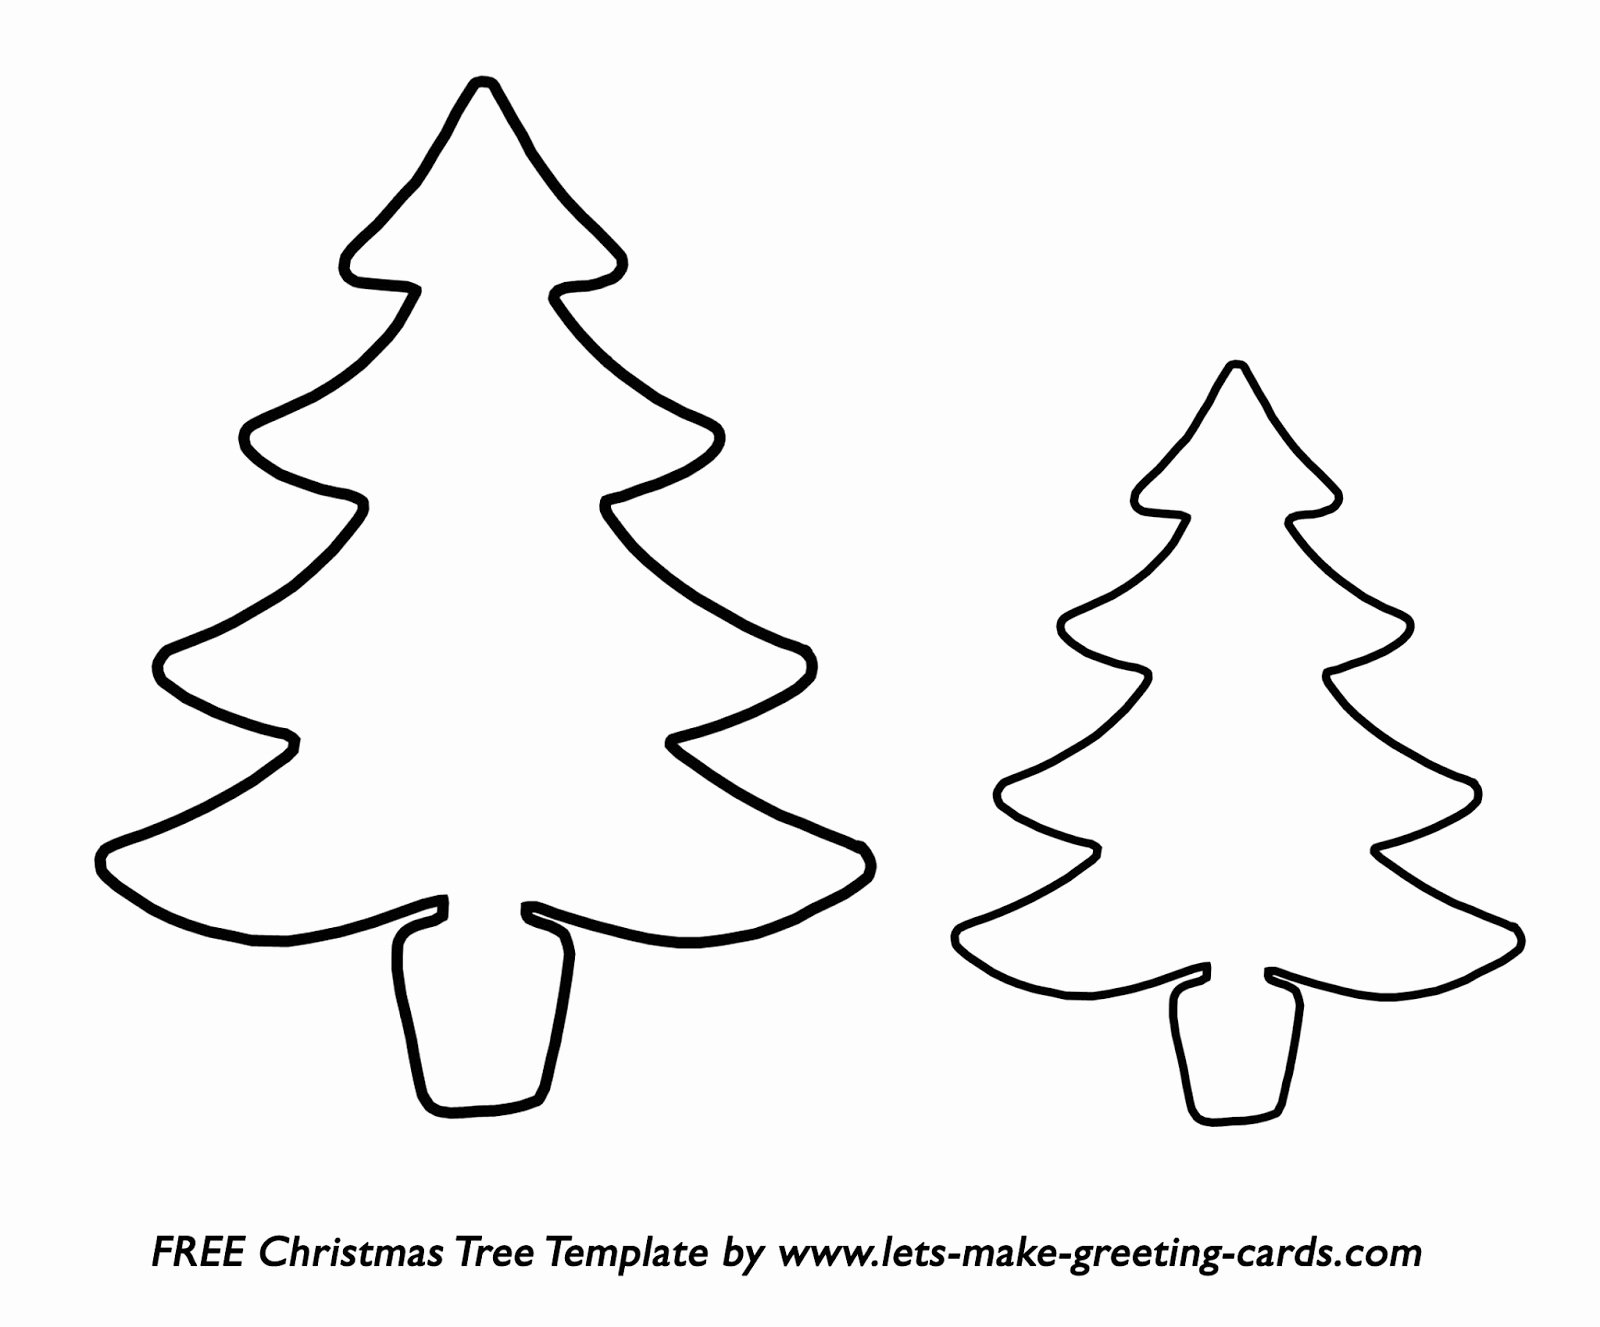 Free Printable Christmas Tree Template Awesome Decadent Chocolate Mousse